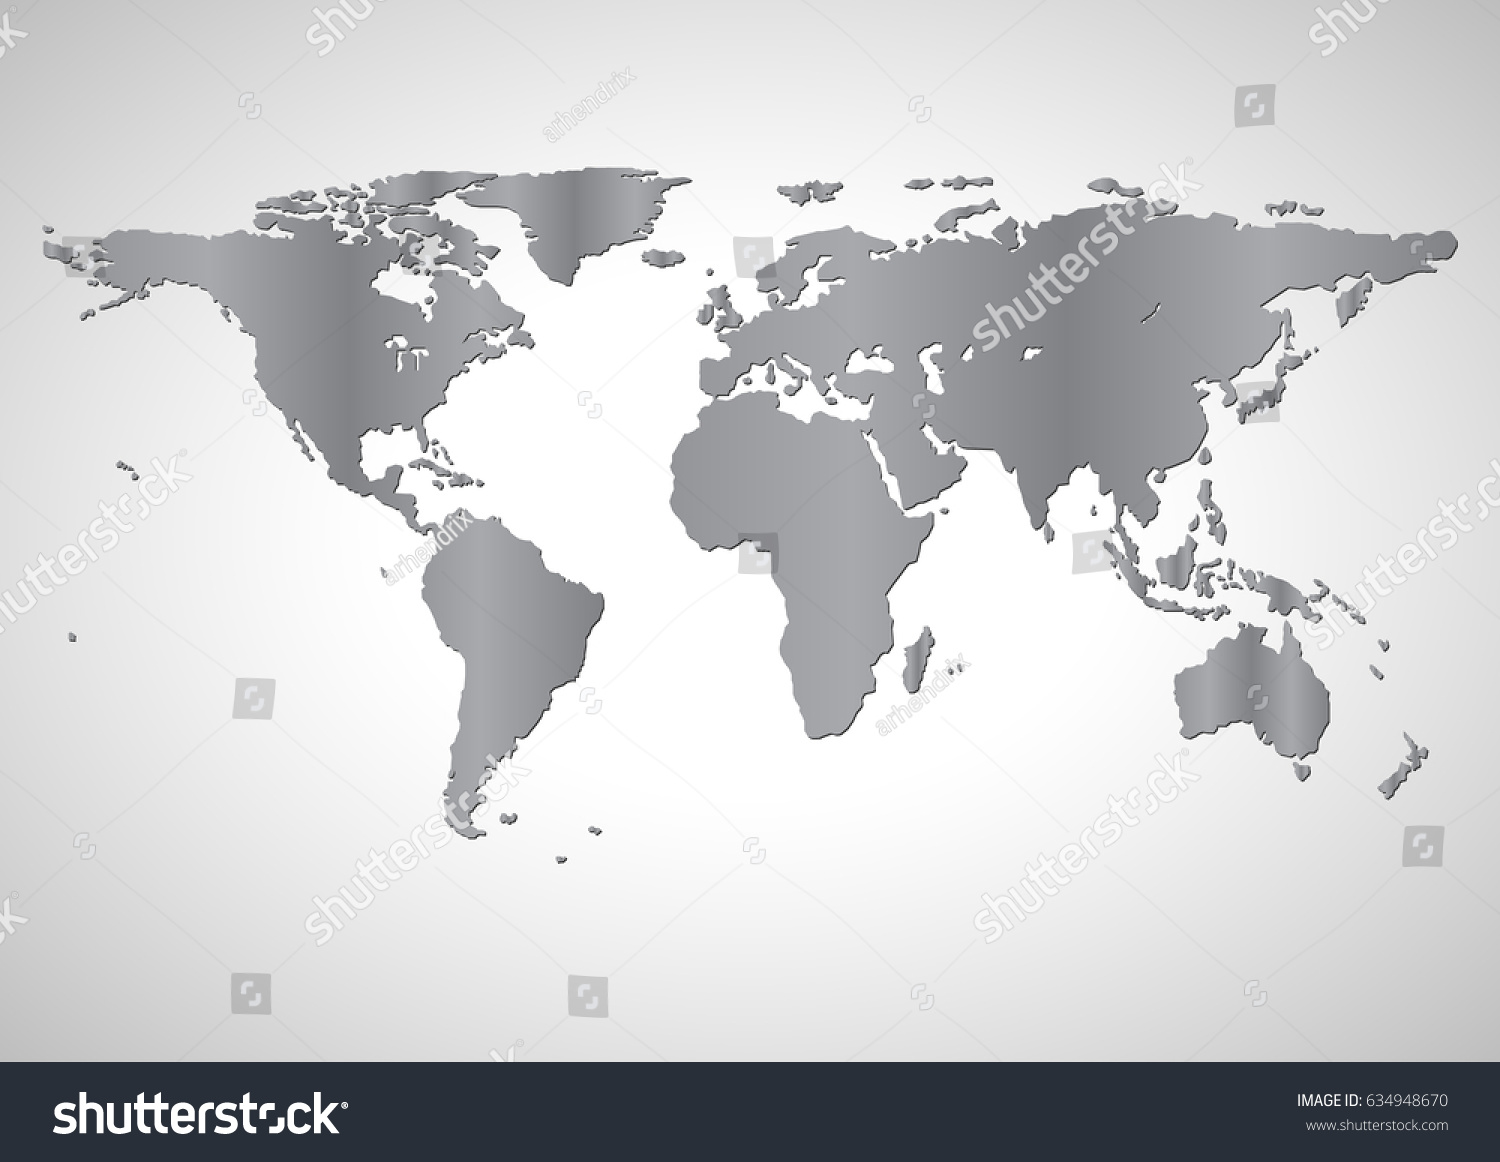 Blank monochrome grey similar world map stock vector 634948670 blank monochrome or grey similar world map or flat earth graph world map illustration gumiabroncs Images